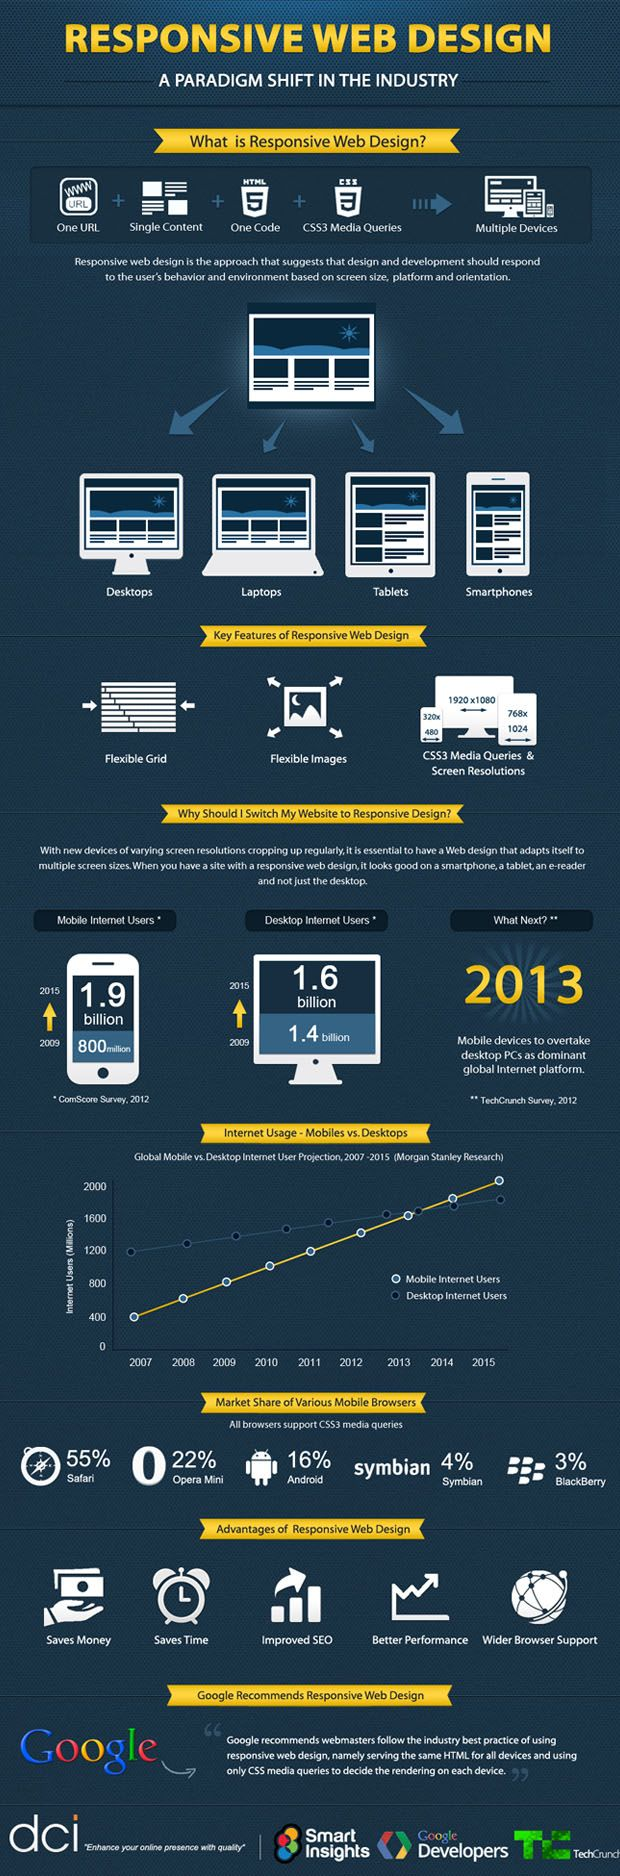 Responsive Web #Design: A Paradigm Shift in the Industry #rwd